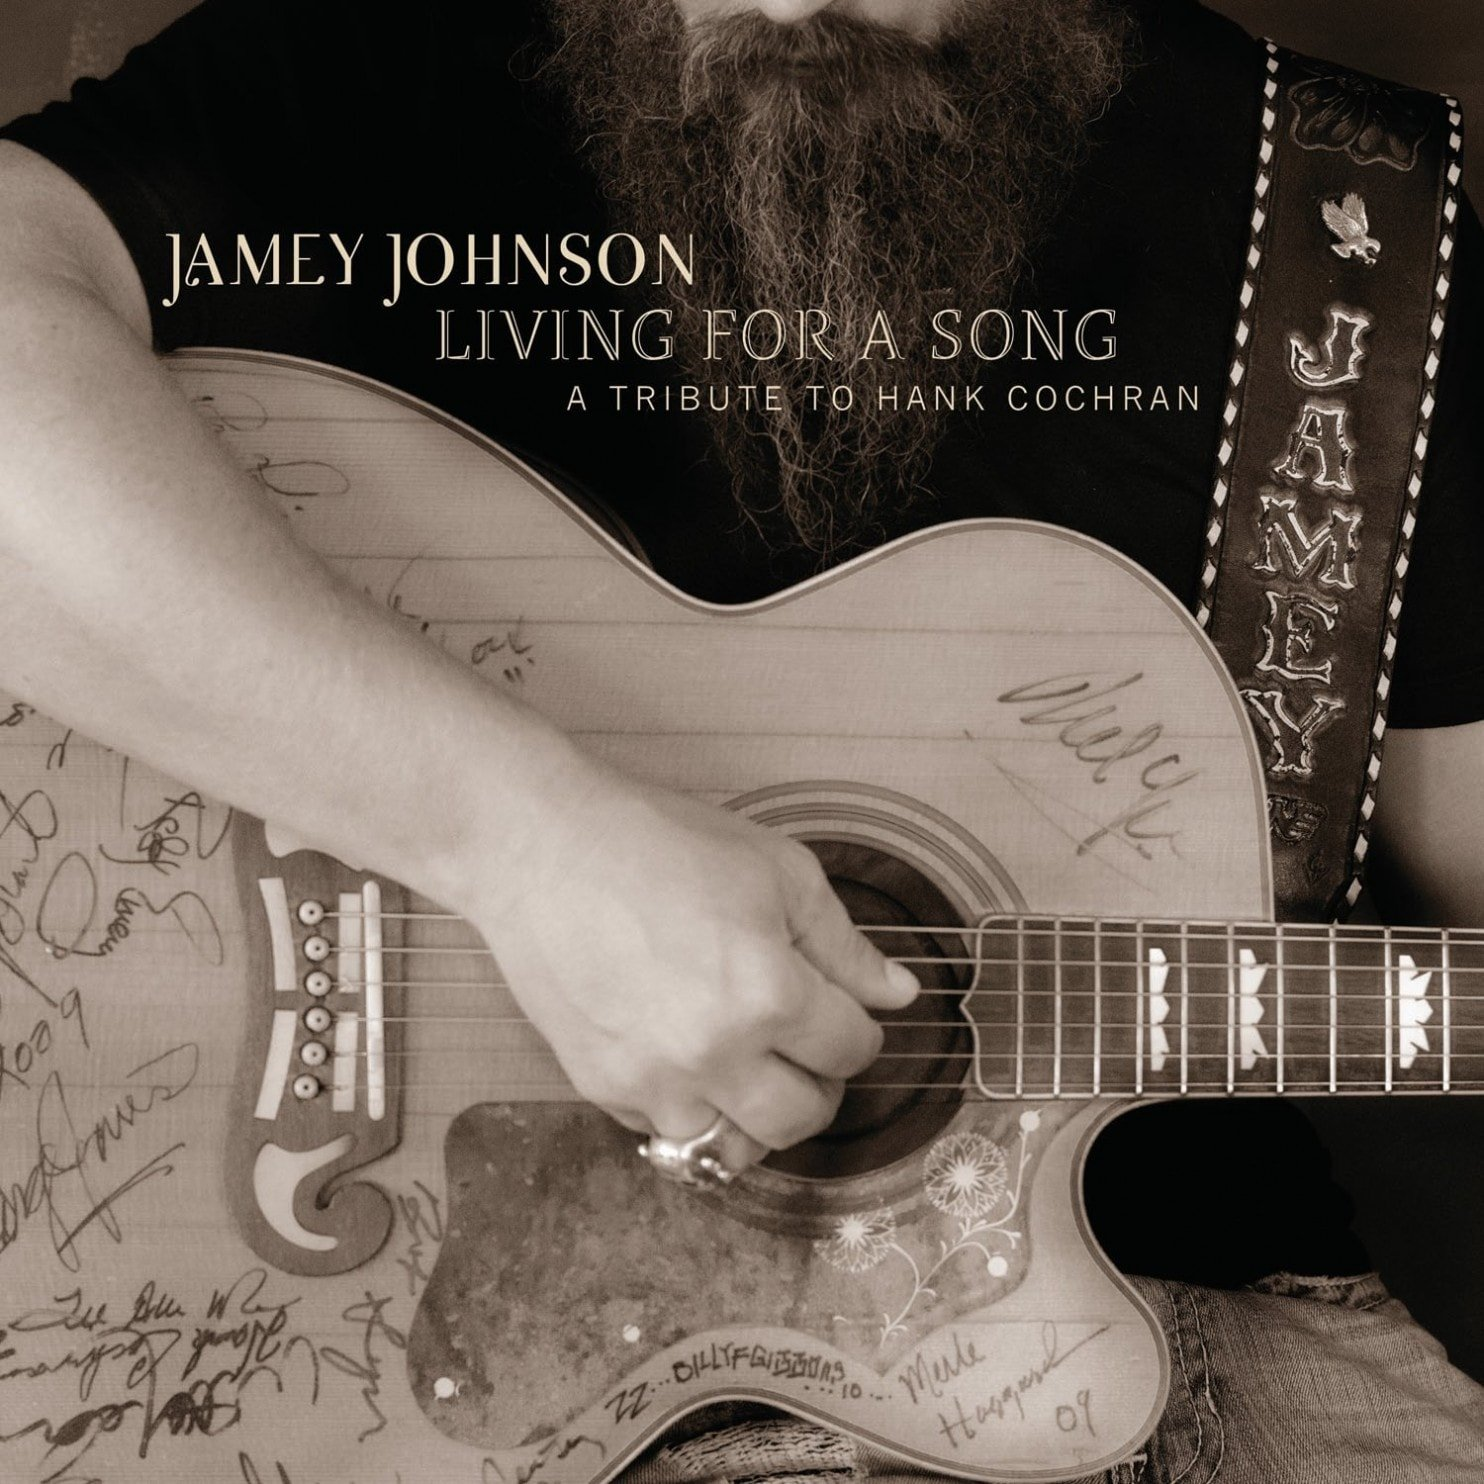 Jamey Johnson, Living for a Song: A Tribute to Hank Cochran